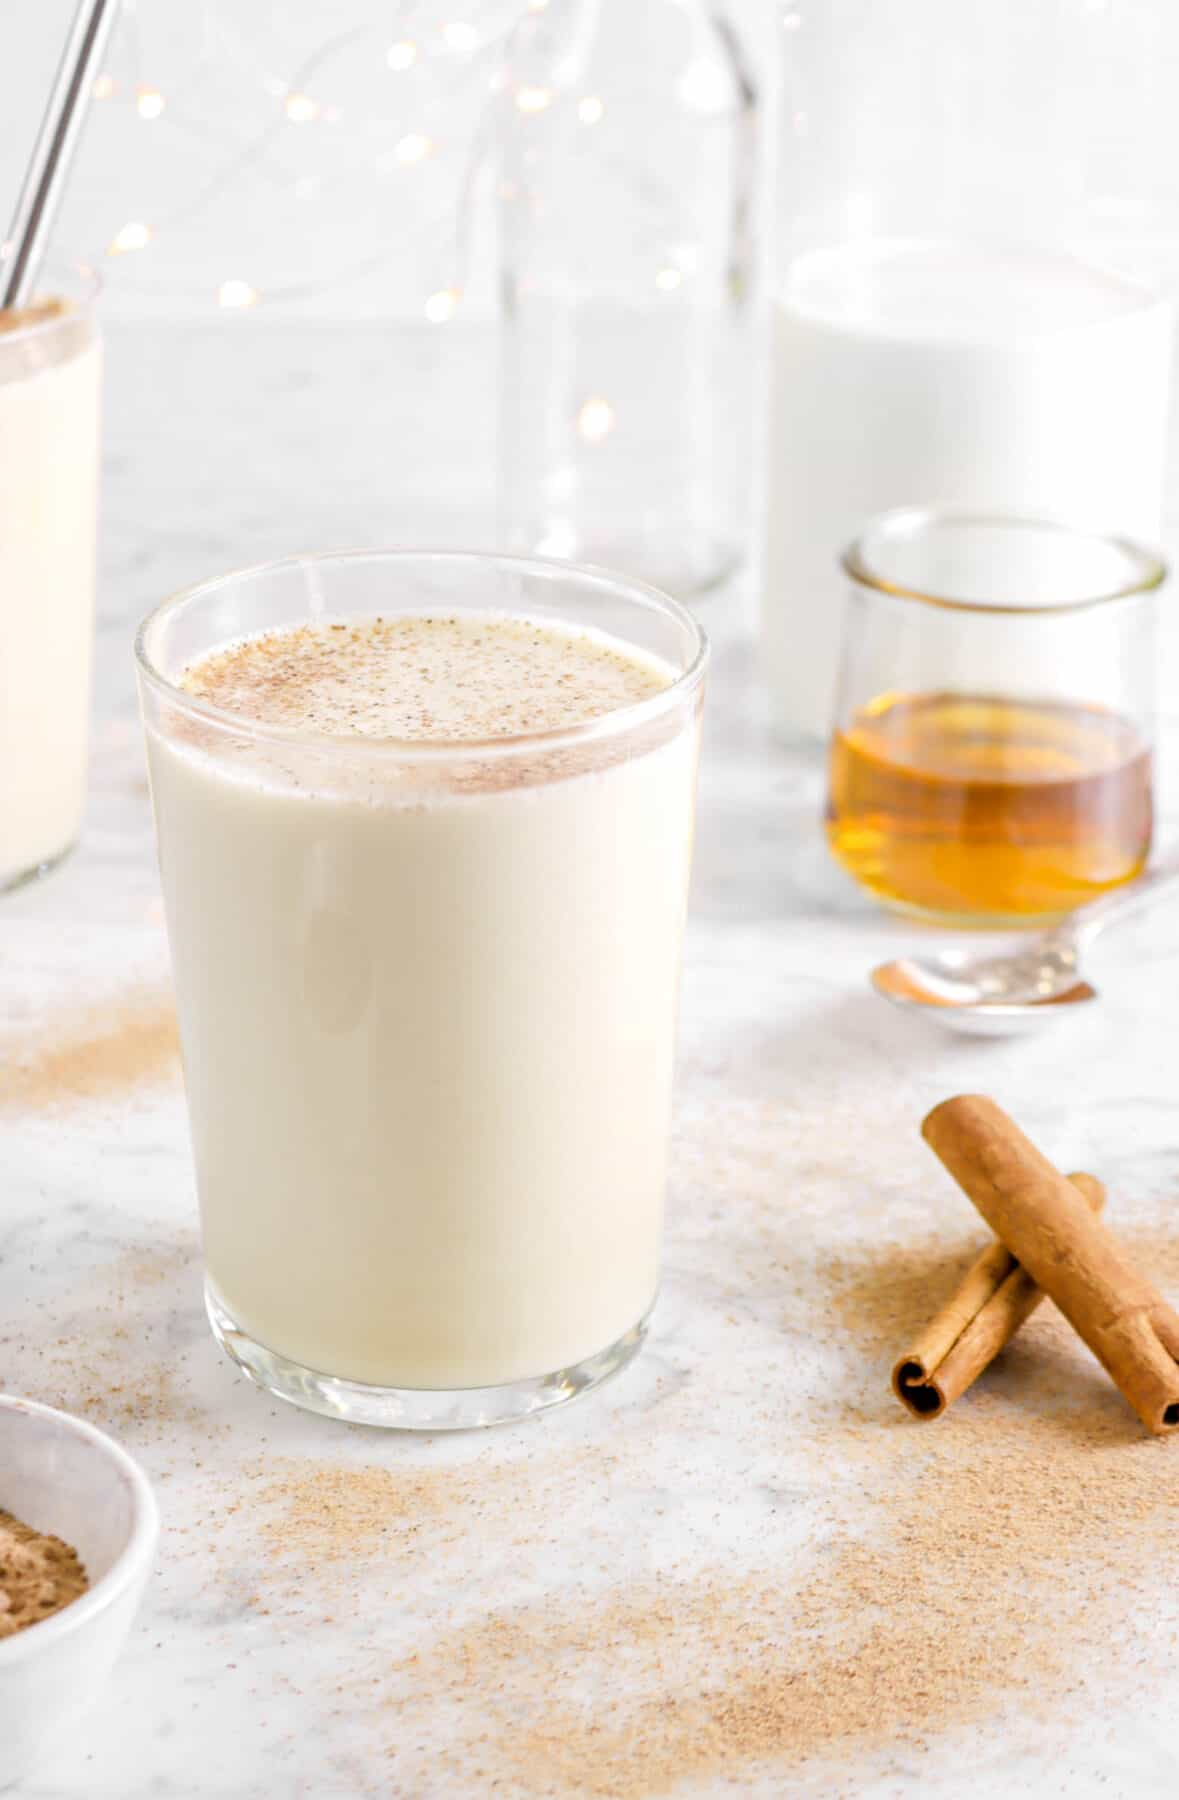 glass of eggnog with cinnamon sticks, spoon, bourbon, and milk behind